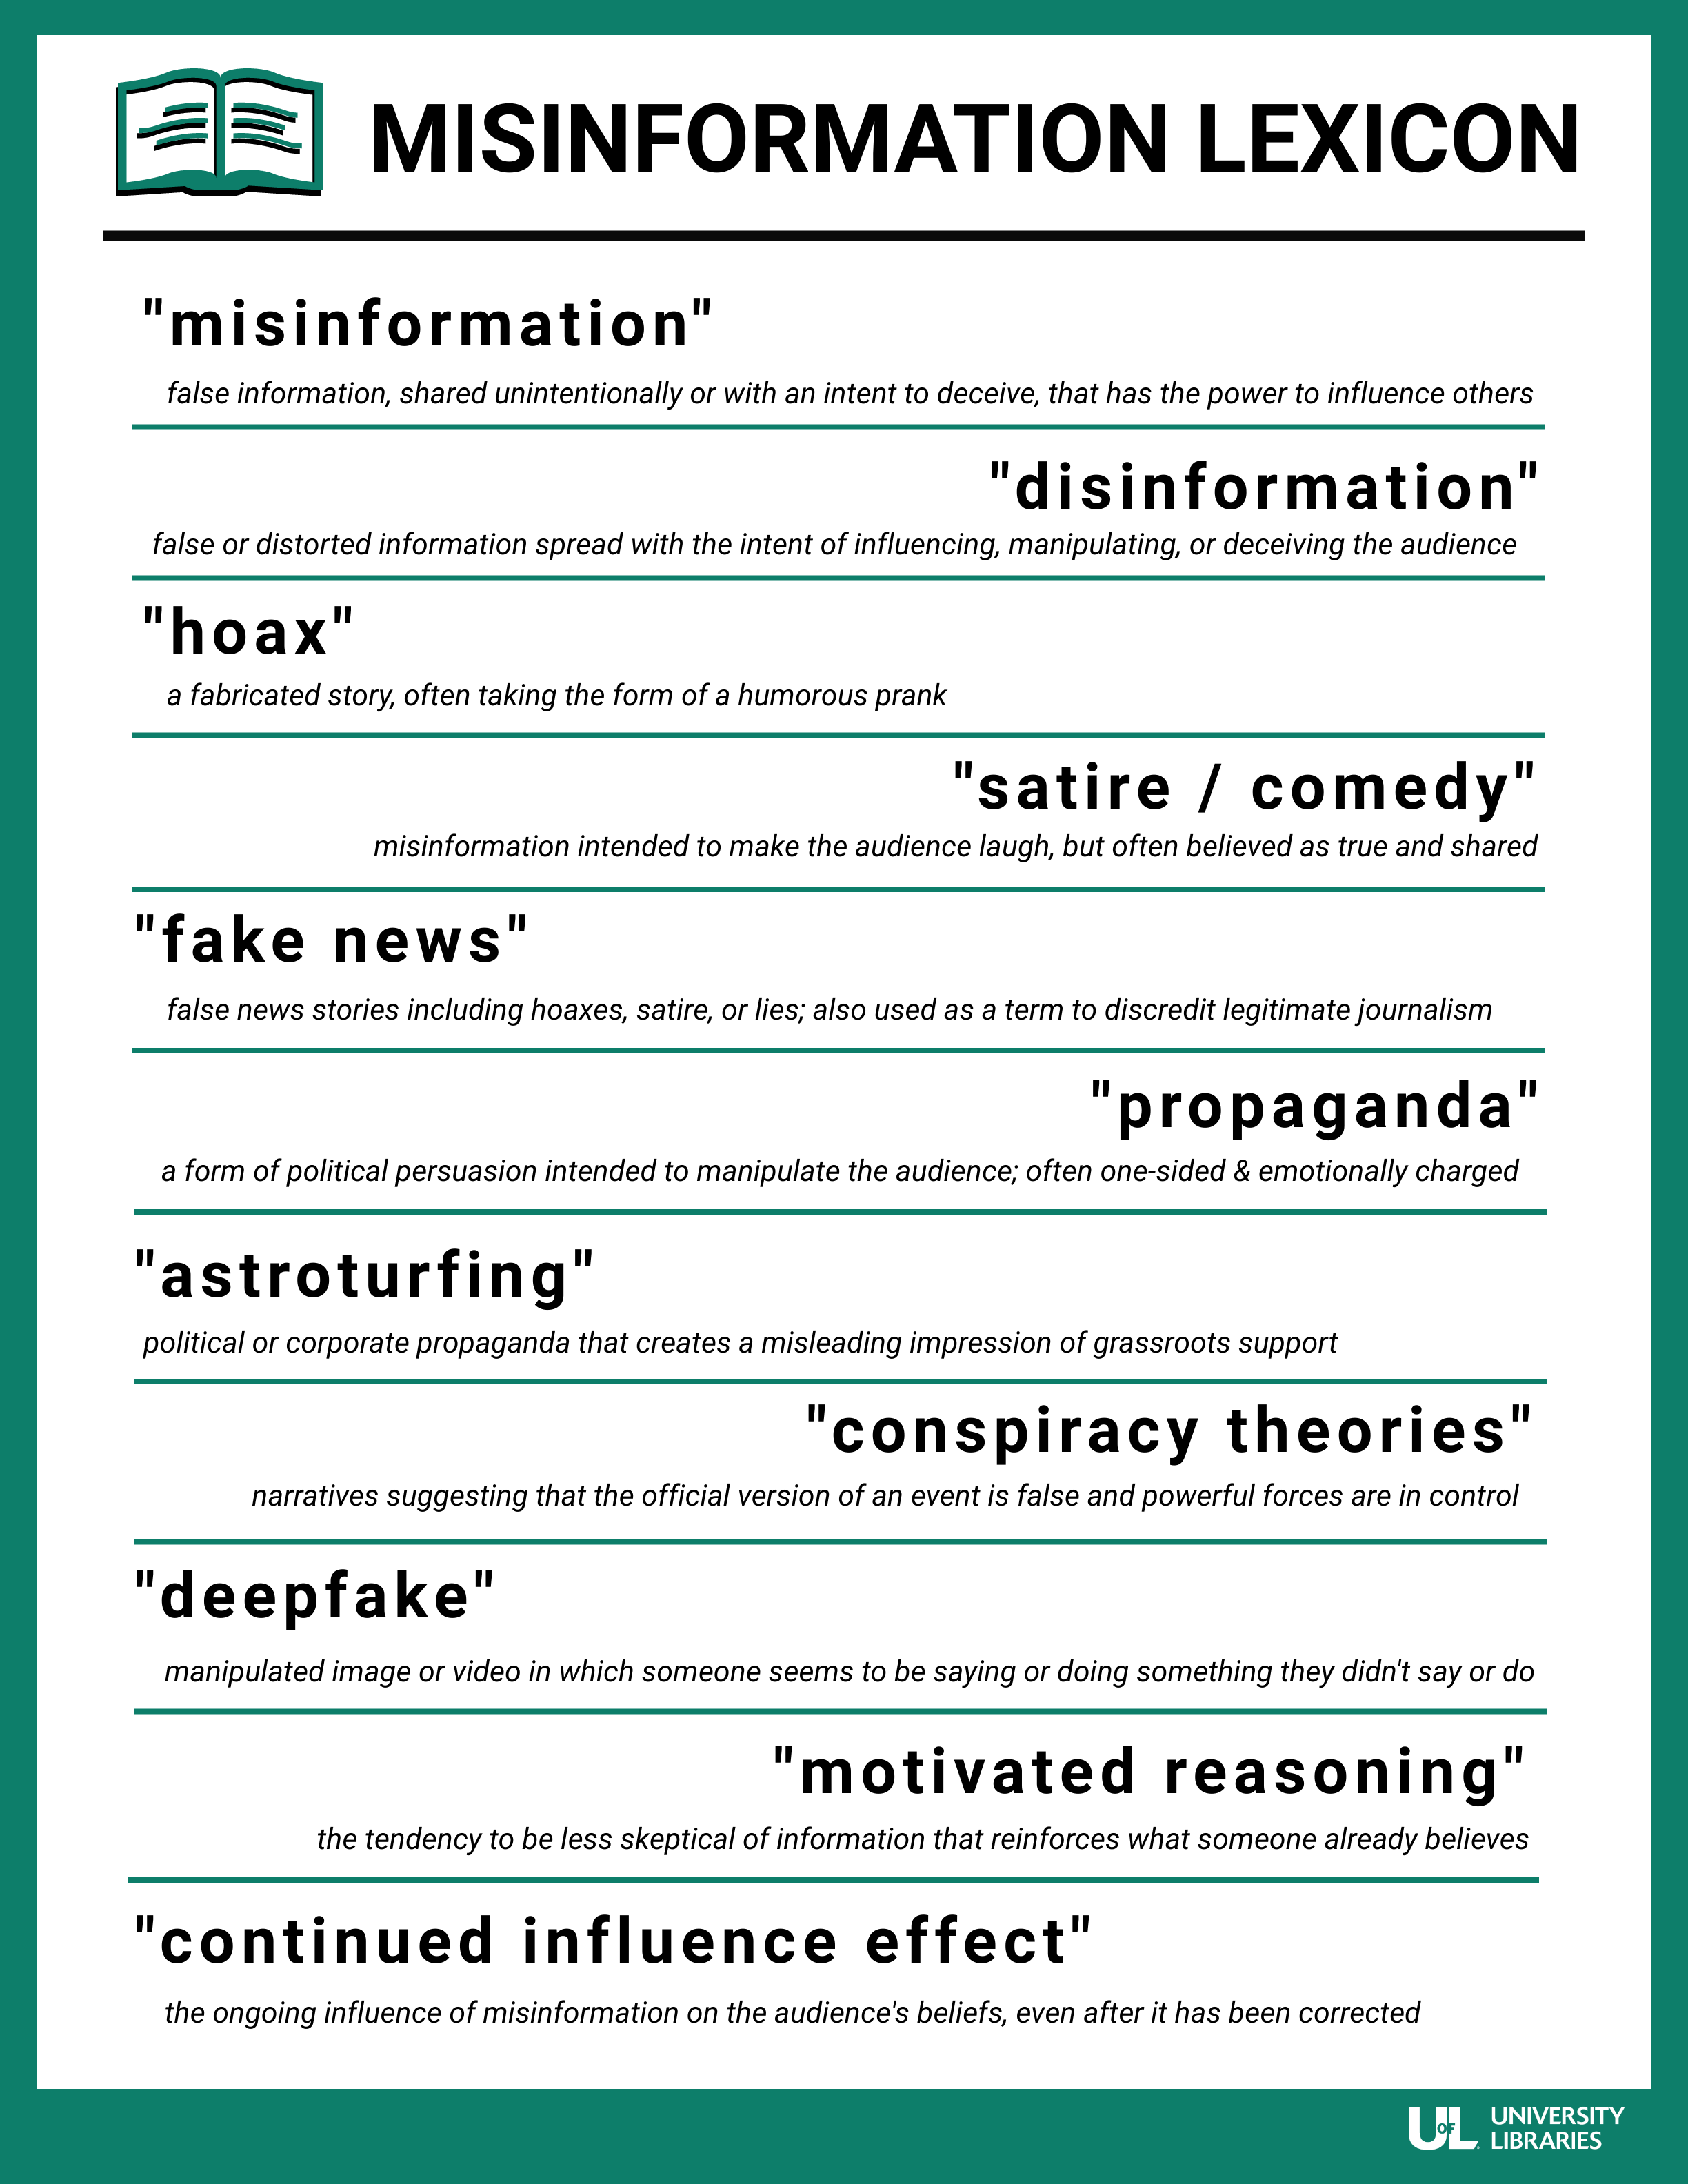 Misinformation Lexicon. Misinformation: false information, shared unintentionally or with an intent to deceive, that has the power to influence others. Disinformation: false or distorted information spread with the intent of influencing, manipulating, or deceiving the audience. Hoax: a fabricated story, often taking the form of a humorous prank. Satire/Comedy: misinformation intended to make the audience laugh, but often believed as true and shared. Fake news: false news stories including hoaxes, satire, or lies; also used as a term to discredit legitimate journalism. Propaganda: a form of political persuasion intended to manipulate the audience; often one-sided and emotionally charged. Astroturfing: political or corporate propaganda that creates a misleading impression of grassroots support. Conspiracy theories: narratives suggesting that the official version of an event is false and powerful forces are in control. Deepfake: manipulated image or video in which someone seems to be saying or doing something they didn't say or do. Motivated reasoning: the tendency to be less skeptical of information that reinforces what someone already believes. Continued influence effect: the ongoing influence of misinformation on the audience's beliefs, even after it has been corrected.